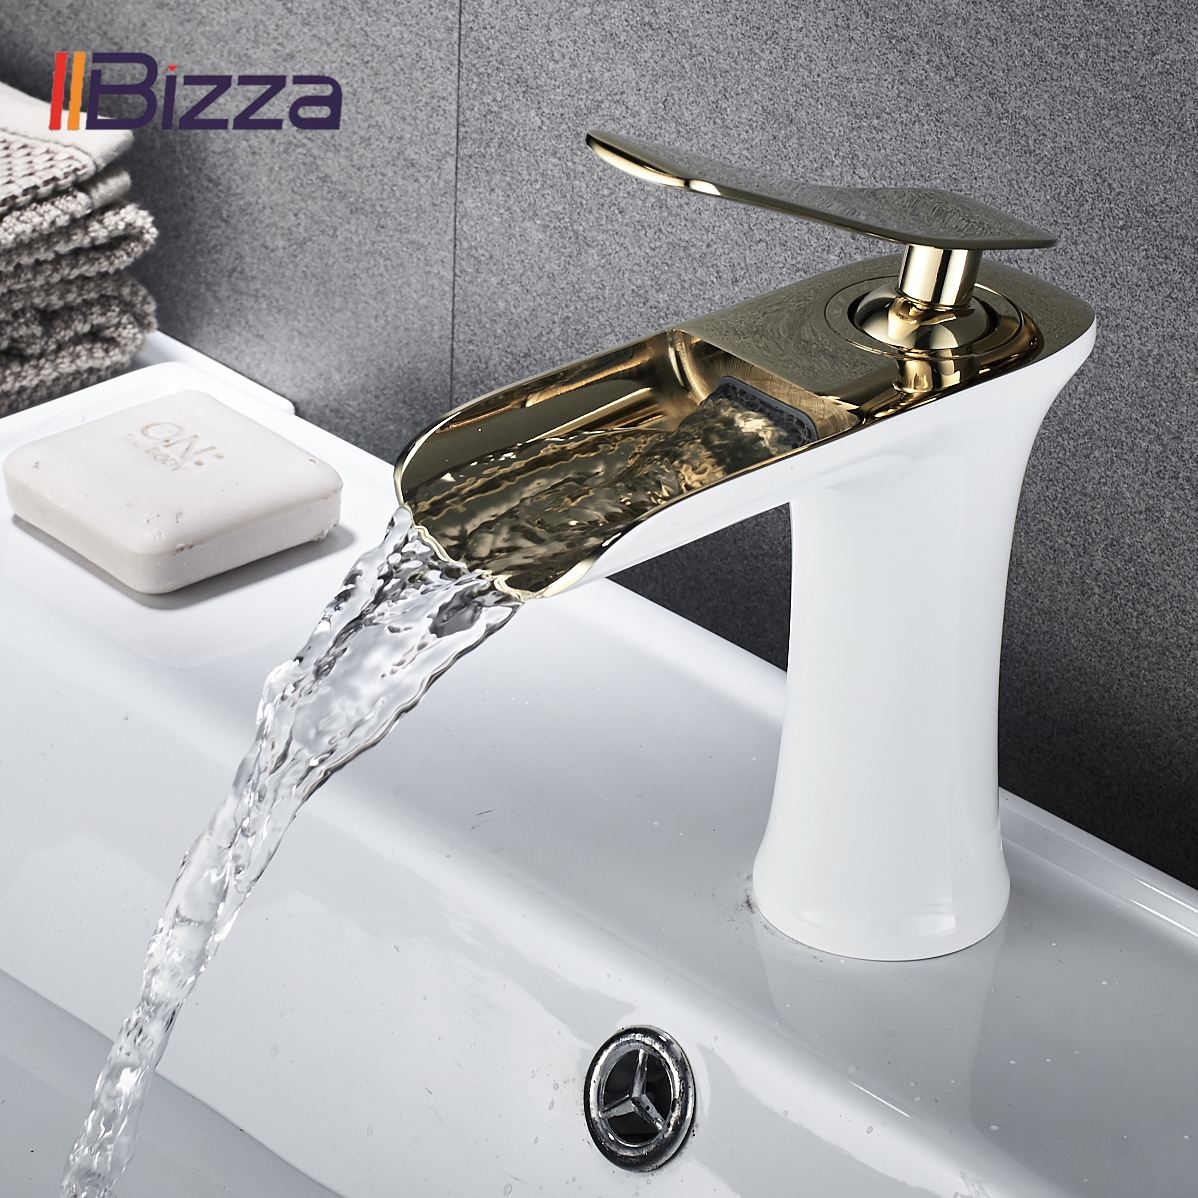 Basin Faucet Black Waterfall Bathroom Faucets Hot Cold Water Basin Mixer Tap Chrome Brass Toilet Sink Water Taps Crane Gold 1401-in Basin Faucets from Home Improvement